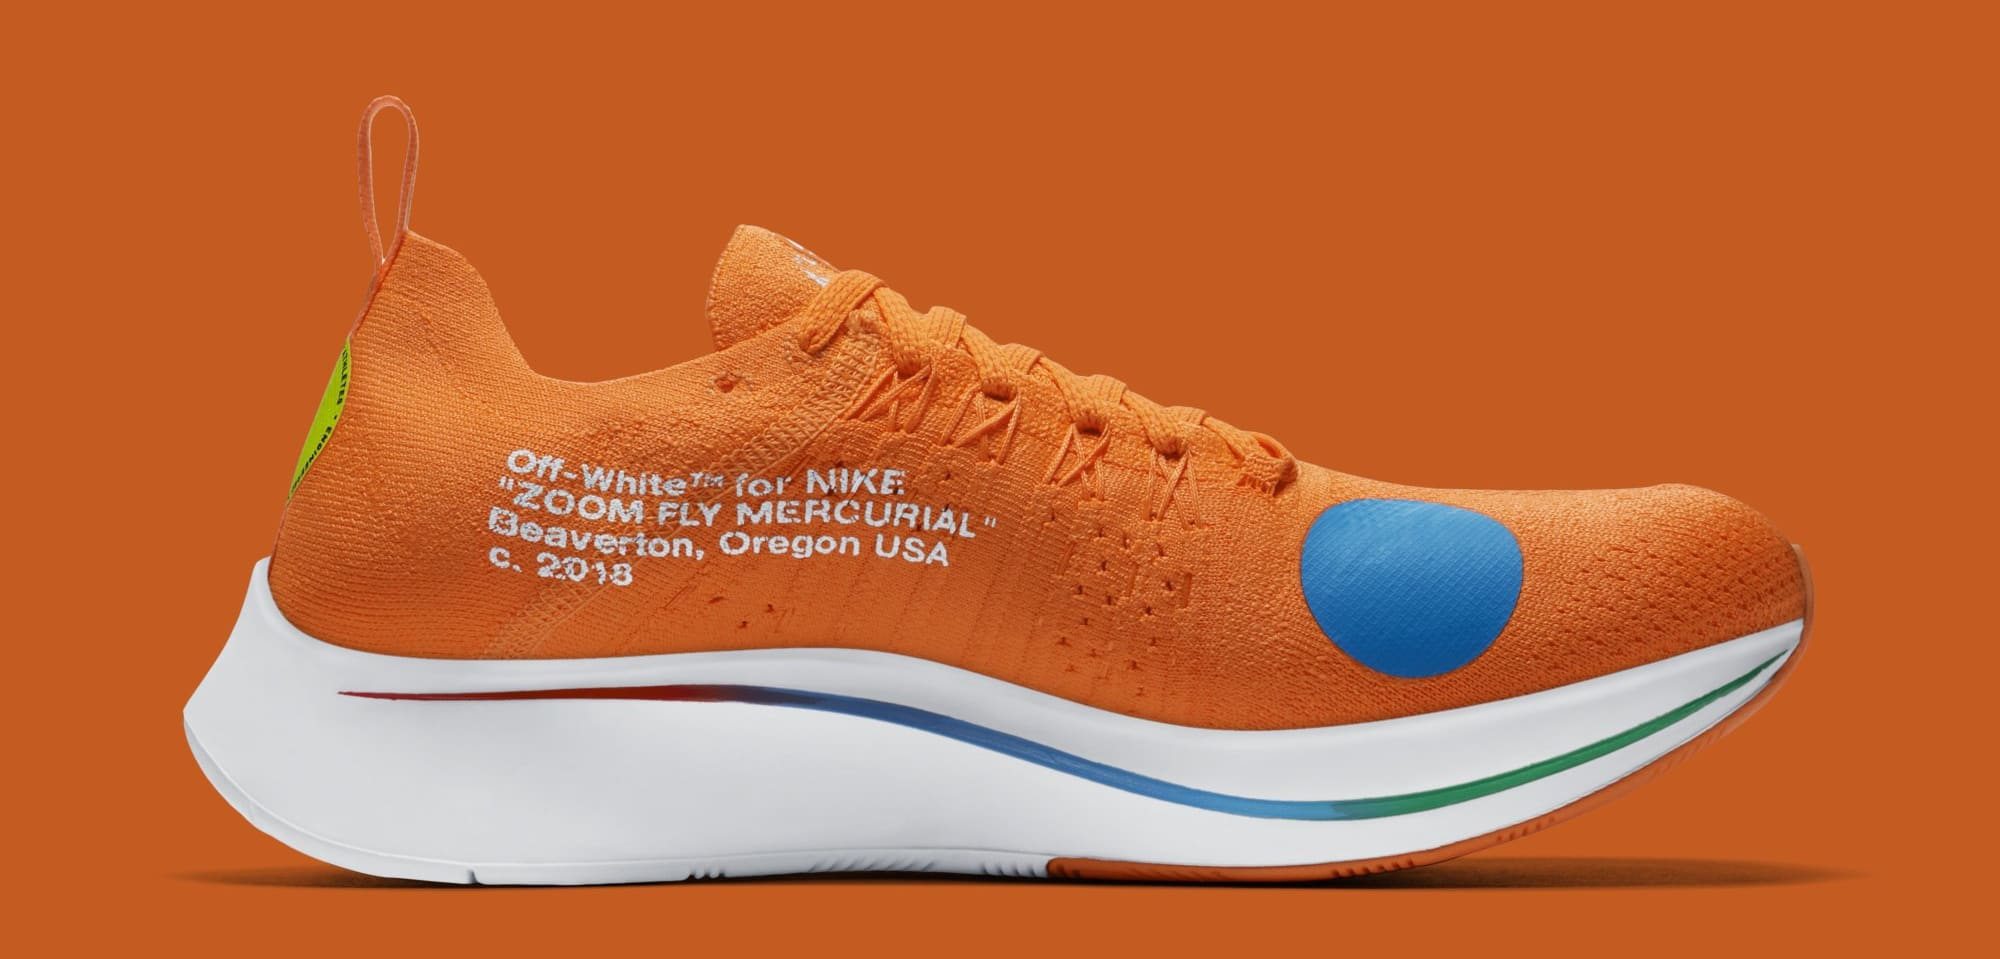 Off-White x Nike Zoom Fly Mercurial Flyknit 'Total Orange' AO2115-800 (Medial)